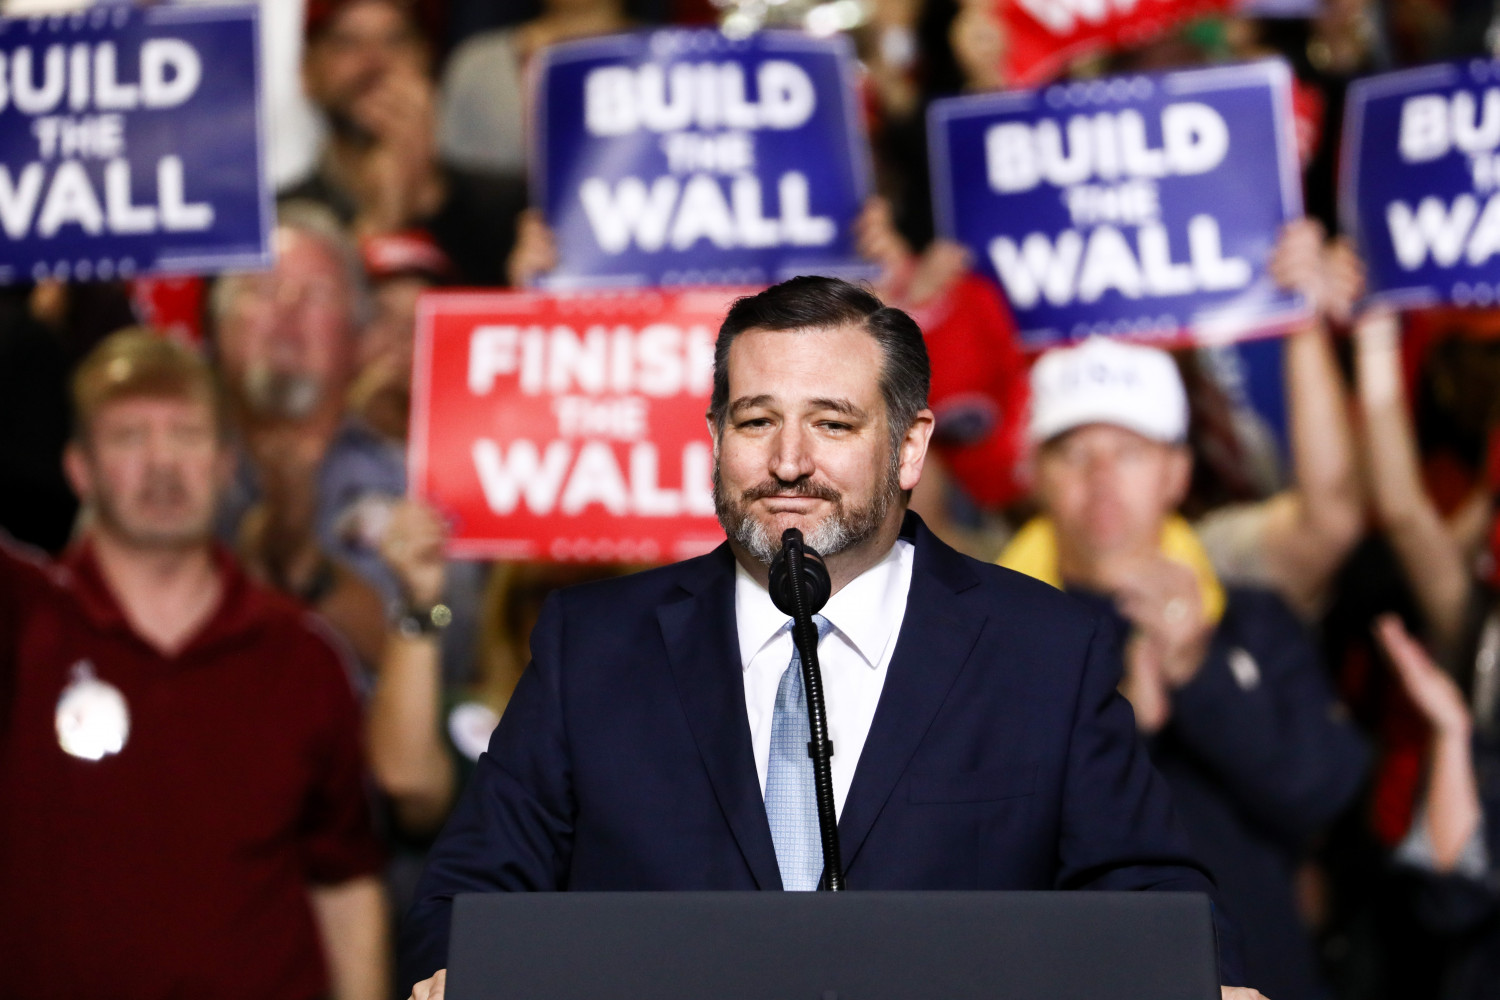 Sen. Ted Cruz (R-Texas) at a Make America Great Again rally in El Paso, Texas